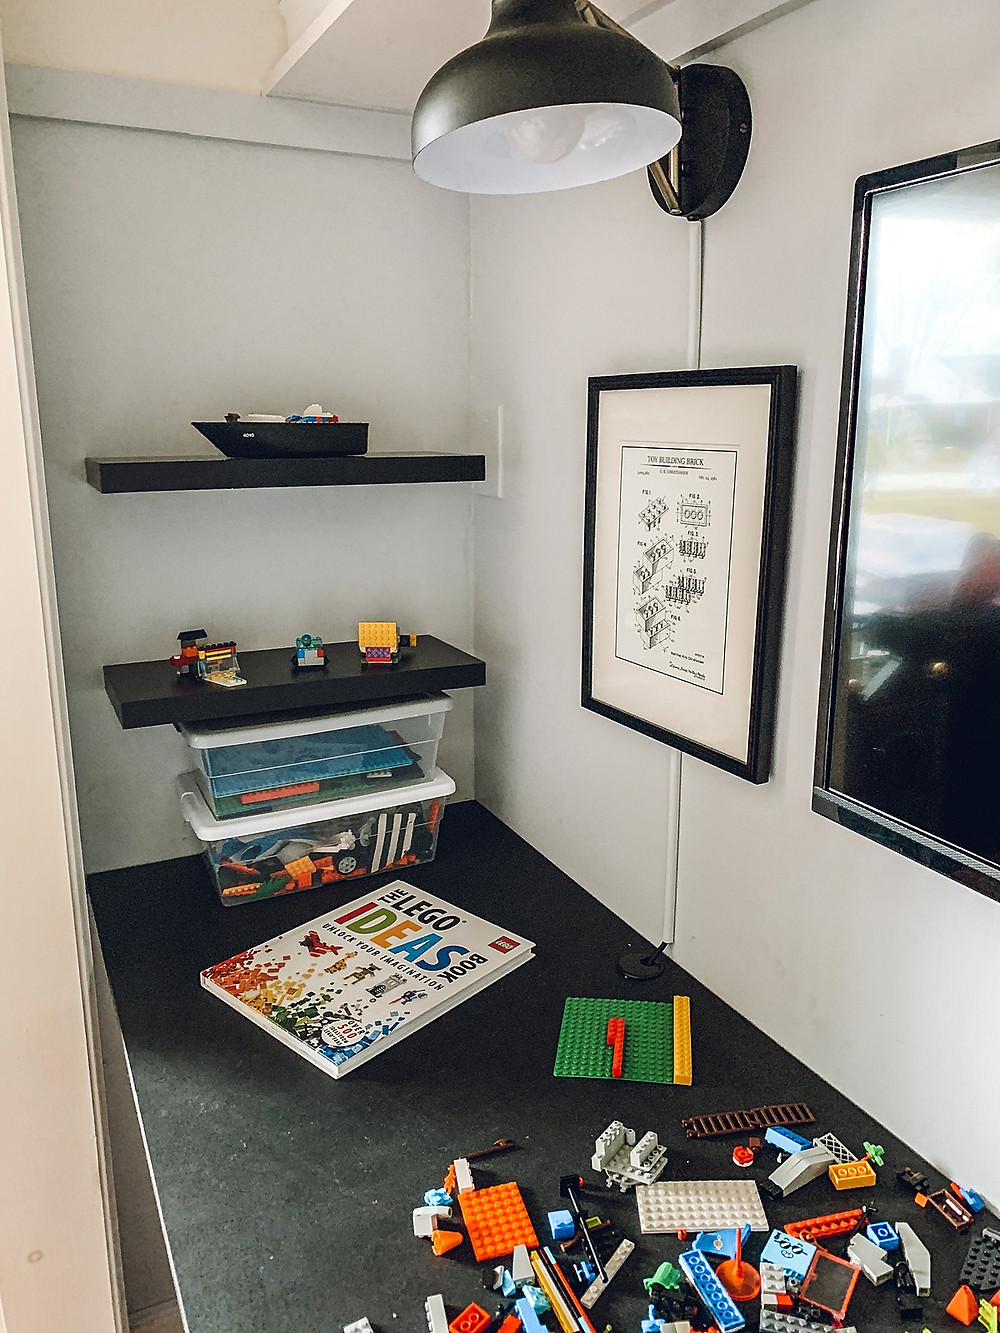 Playroom design, playroom inspiration, diy playroom, playroom ideas, lego table, diy floating desk, cloffice, playroom storage, toy storage, playroom rugs, playroom furniture, weekend project, kid spaces, children's spaces, play space, playroom styling, playroom style, refinished furniture ideas, room design on a budget, styling with what you already have, choosing home décor, lego storage, floating desk tutorial, design on a budget, kids play space, lego building table, DIY lego table, DIY lego desk, lego play room